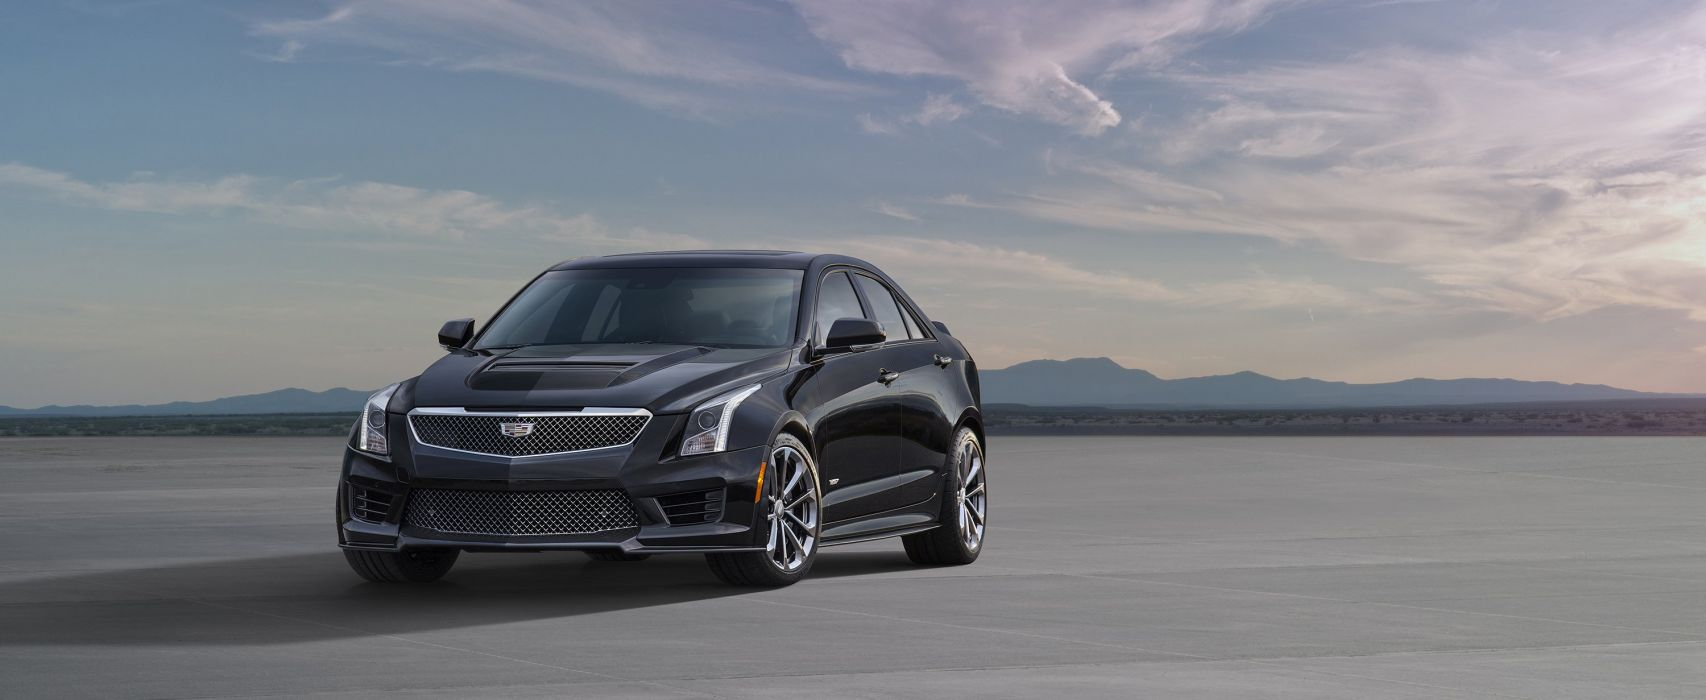 2015 Cadillac ATS-V luxury wallpaper